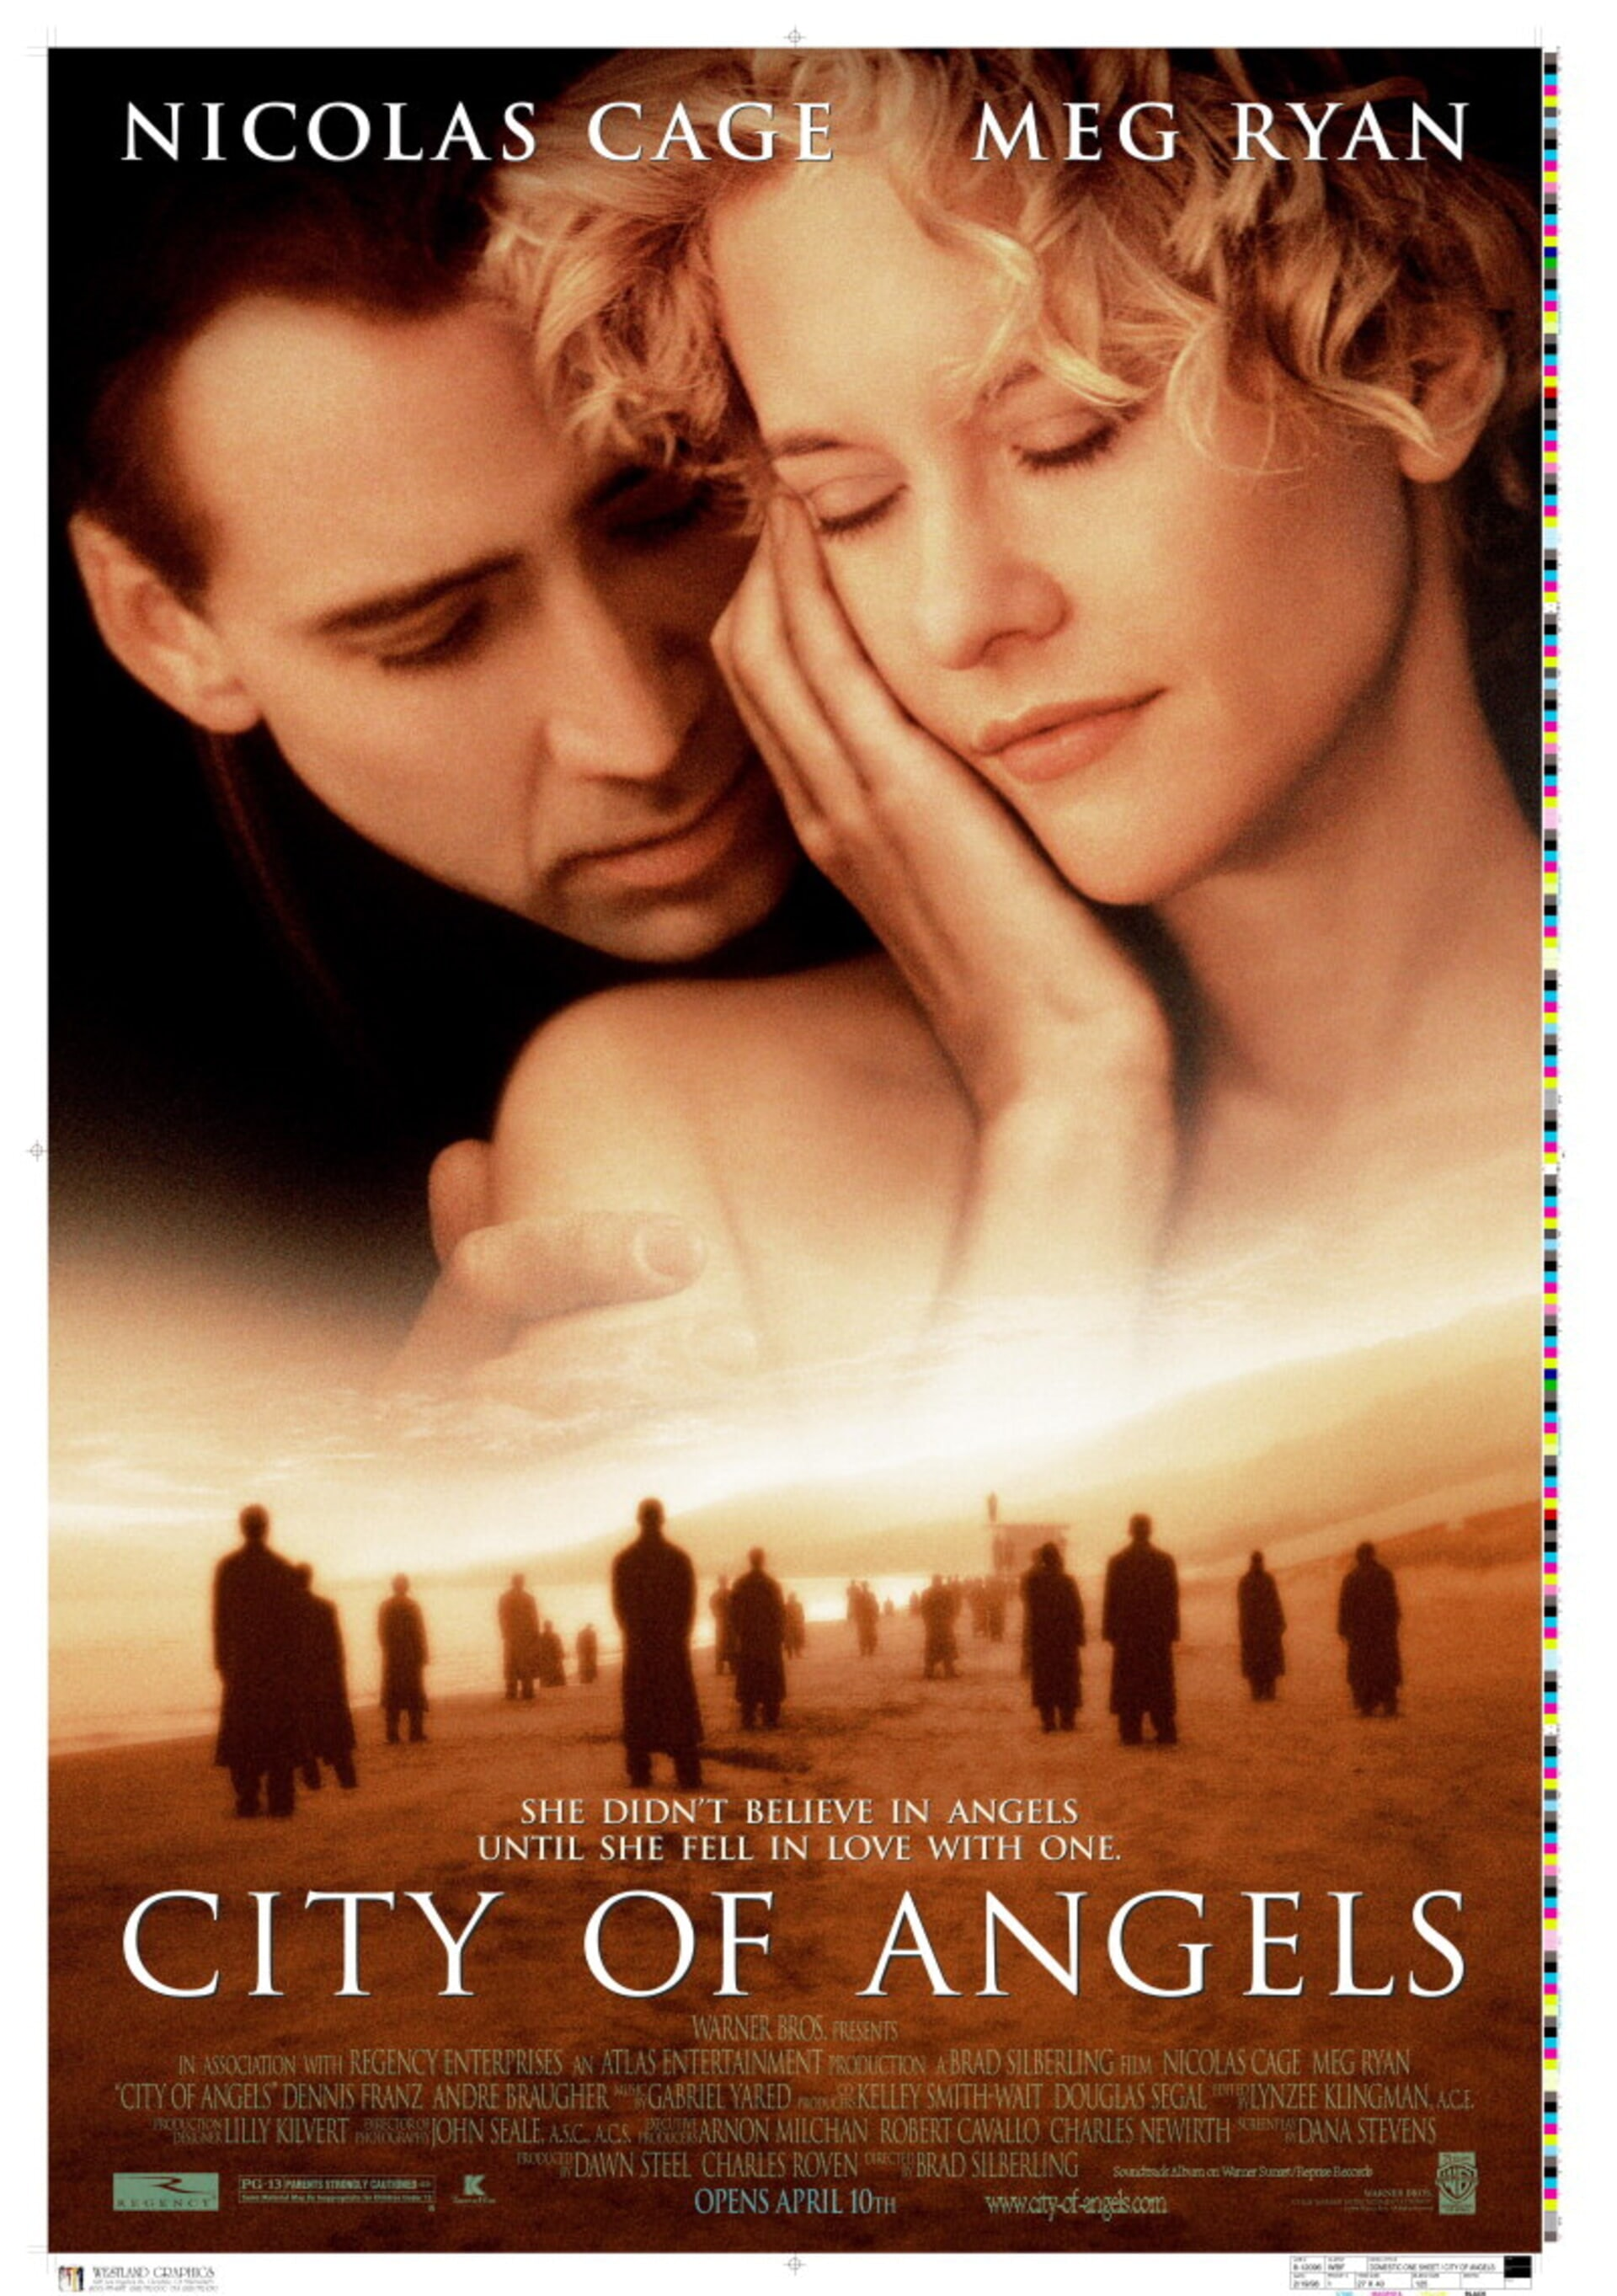 City of Angels - Poster 1